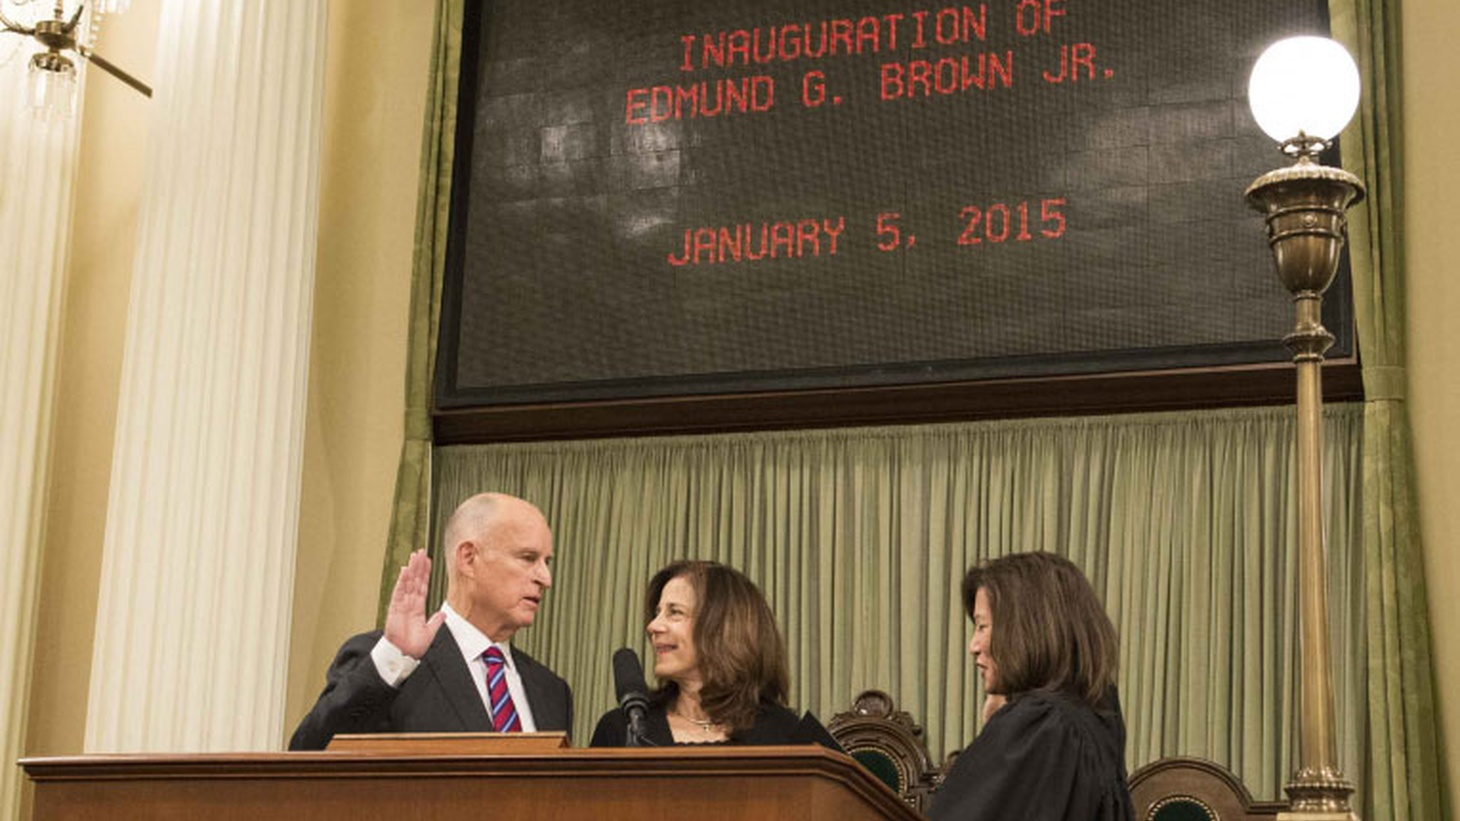 Beginning his fourth term as California's Governor today, Jerry Brown touched on familiar issues — also making a big new commitment to renewable energy. His extended family crowded the balcony of the Assembly Chamber as he recalled seeing his father sworn in to the same office 56 years ago to the day. But Brown's positions on potential controversies remain to be clarified.